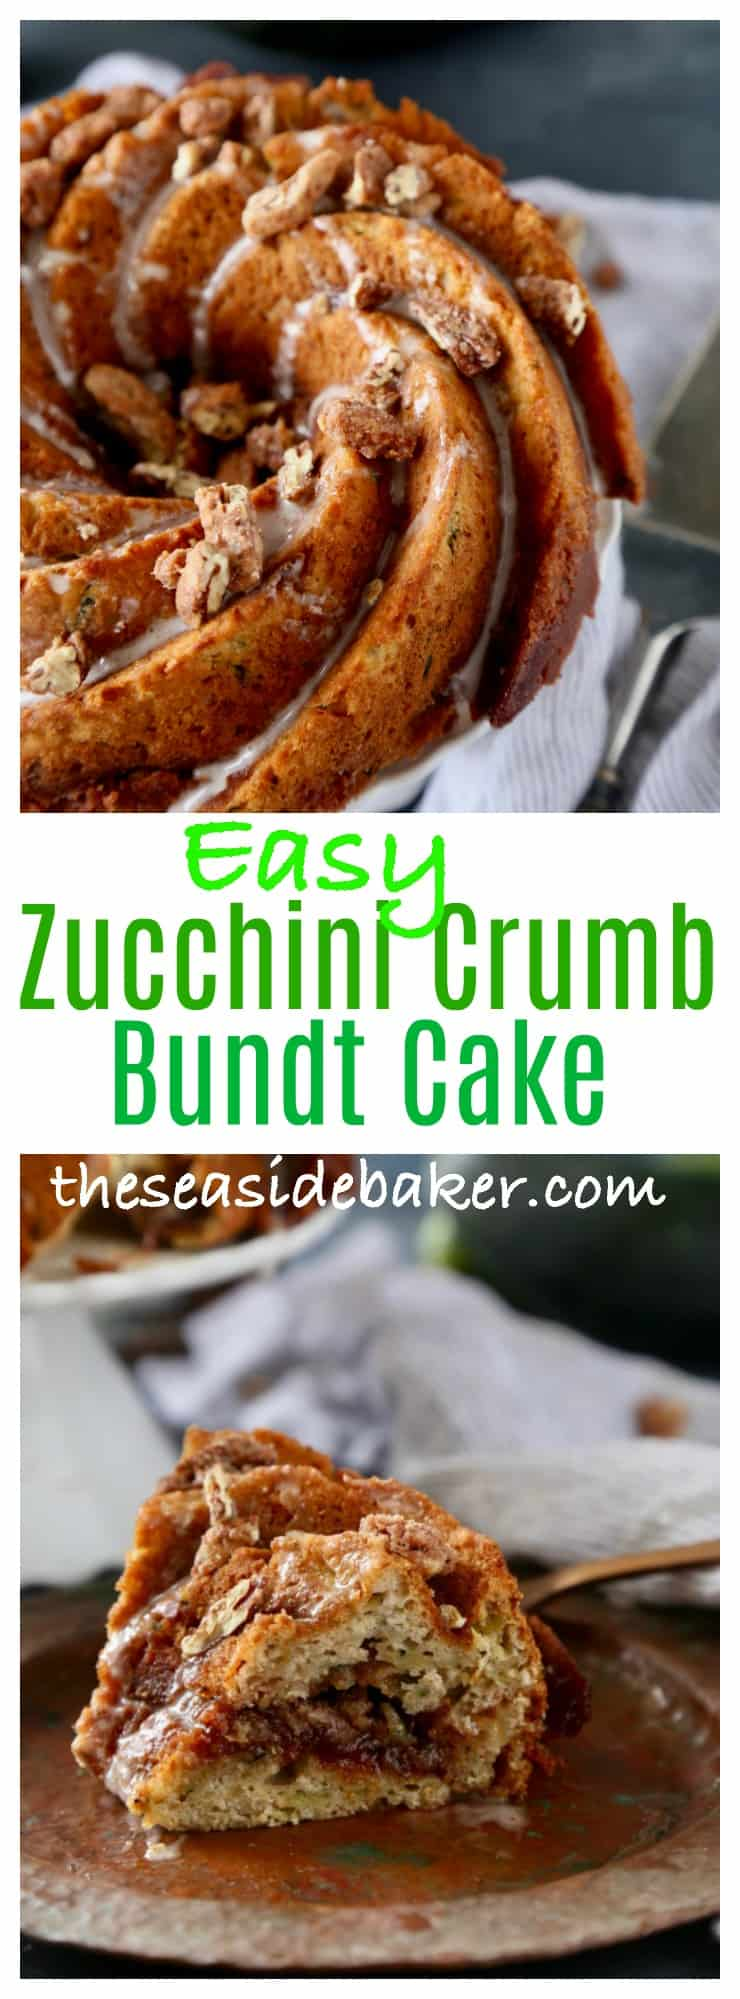 Perfect crumb cake that is full of shredded zucchini and layered with a brown sugar topping. #krusteaz #cakemixrecipes #zucchini #gardenrecipes #cake #breakfast #candiedpecans